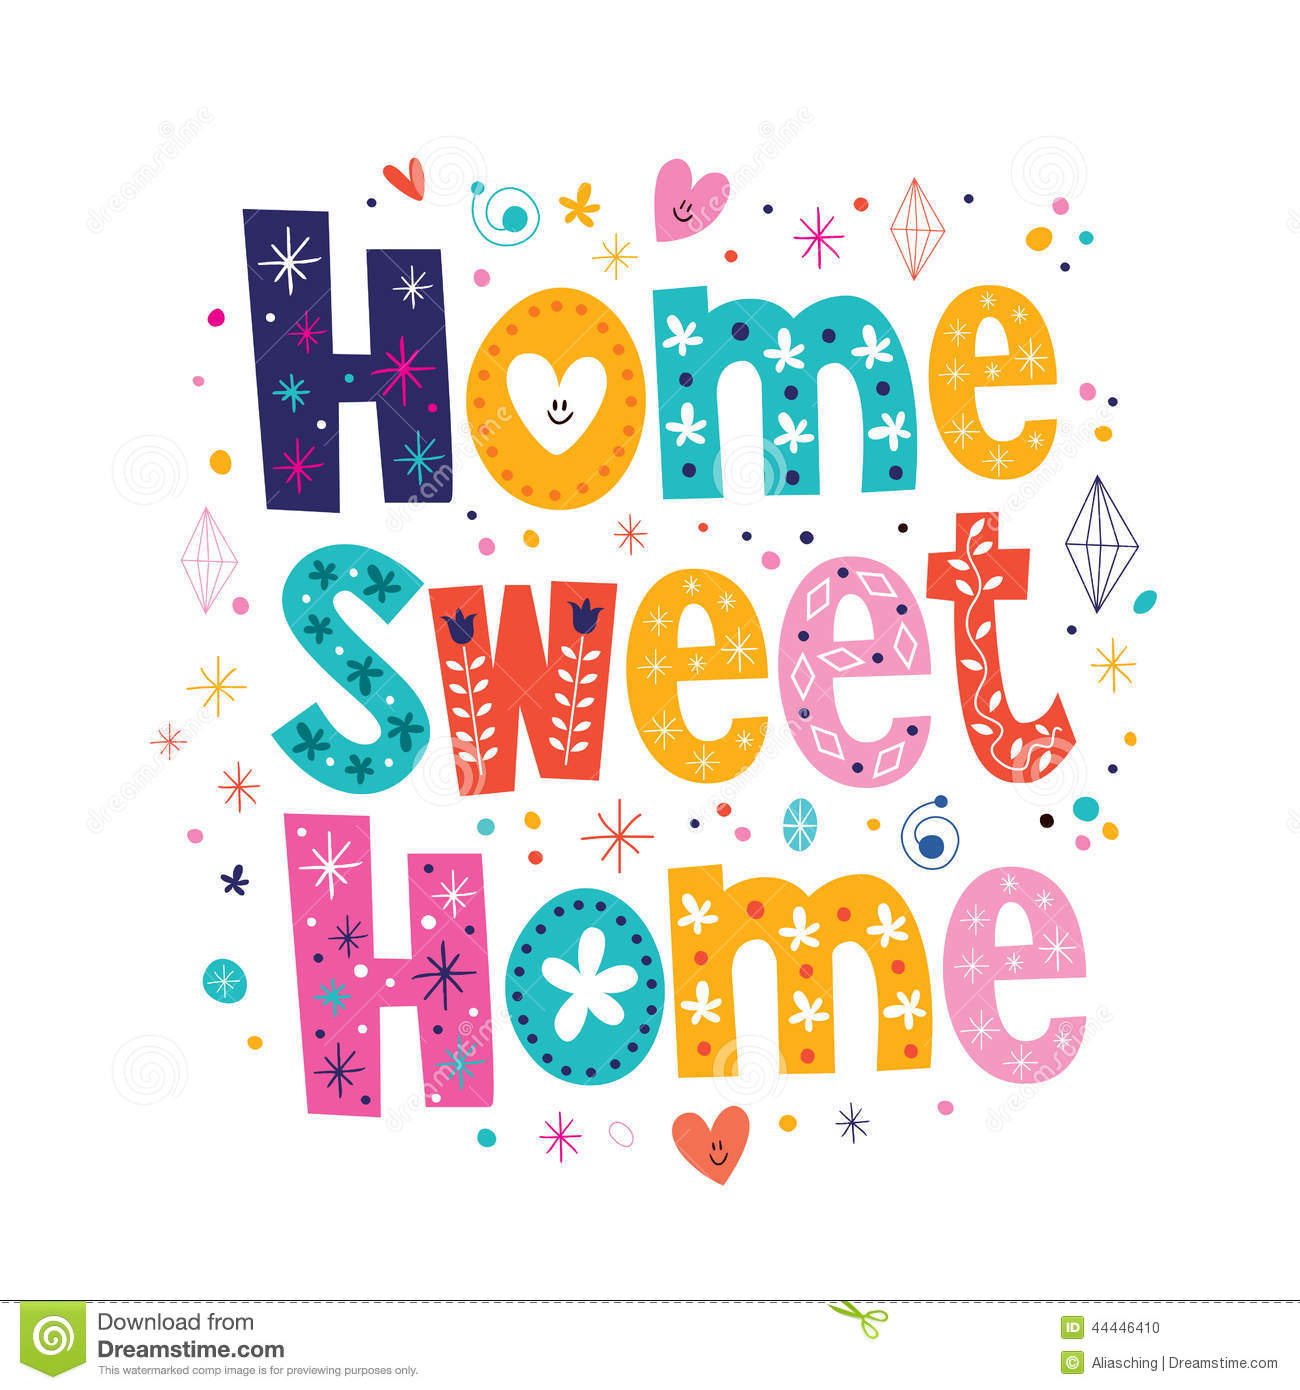 Home Sweet Home Clipart & Home Sweet Home Clip Art Images.